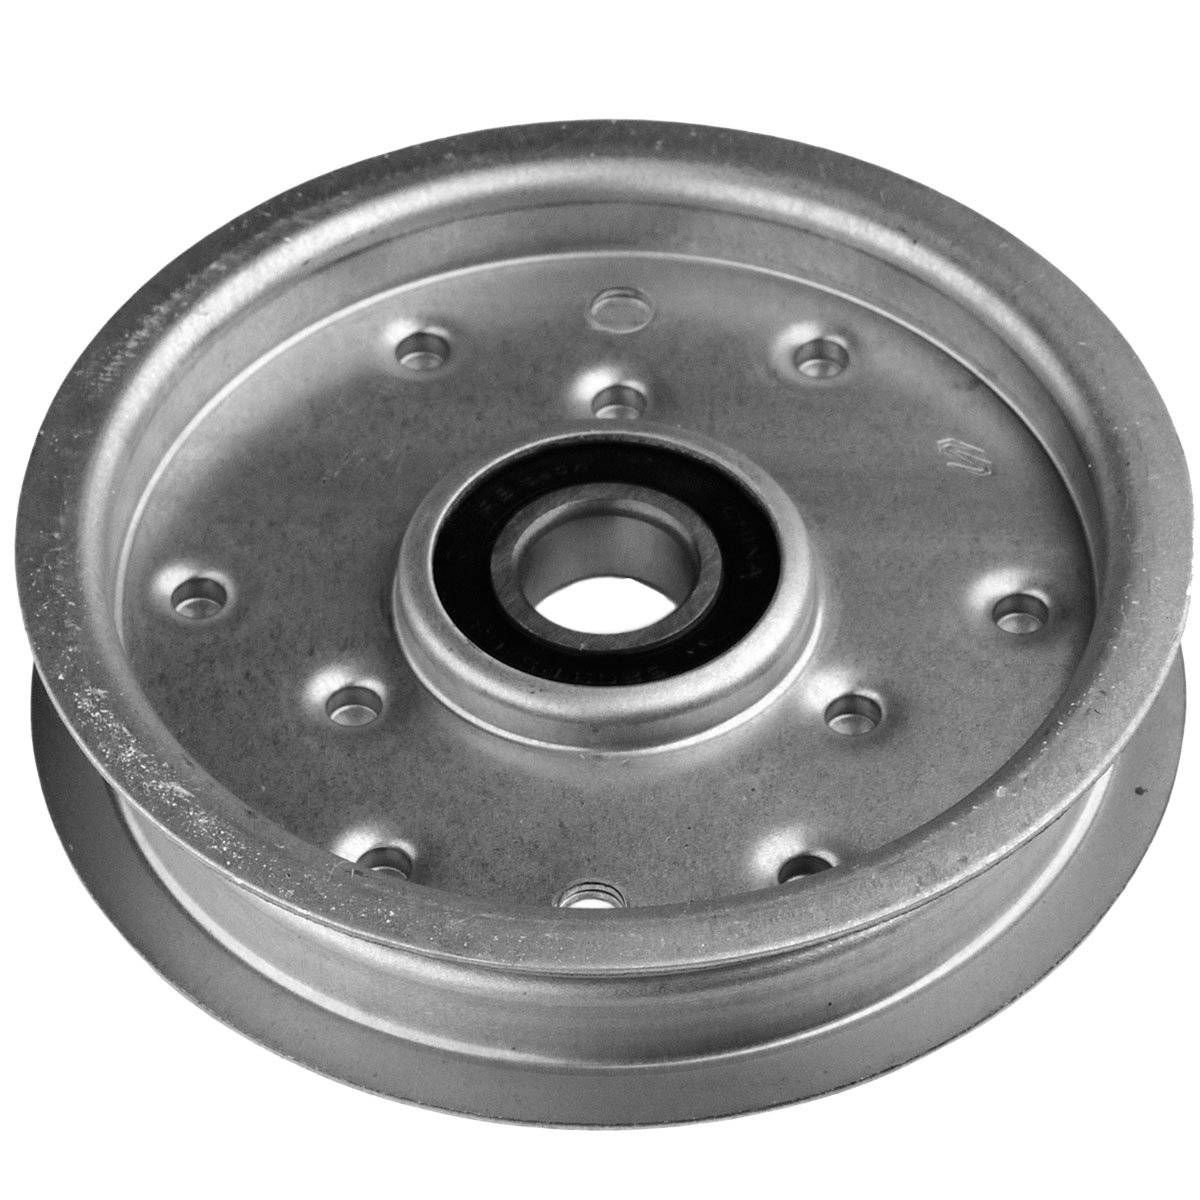 LASER Flat Idler Pulley Replaces Murray & Snapper 690549 - Fits Primary Deck Drive Belt On Many 46 & 52 Inch Decks